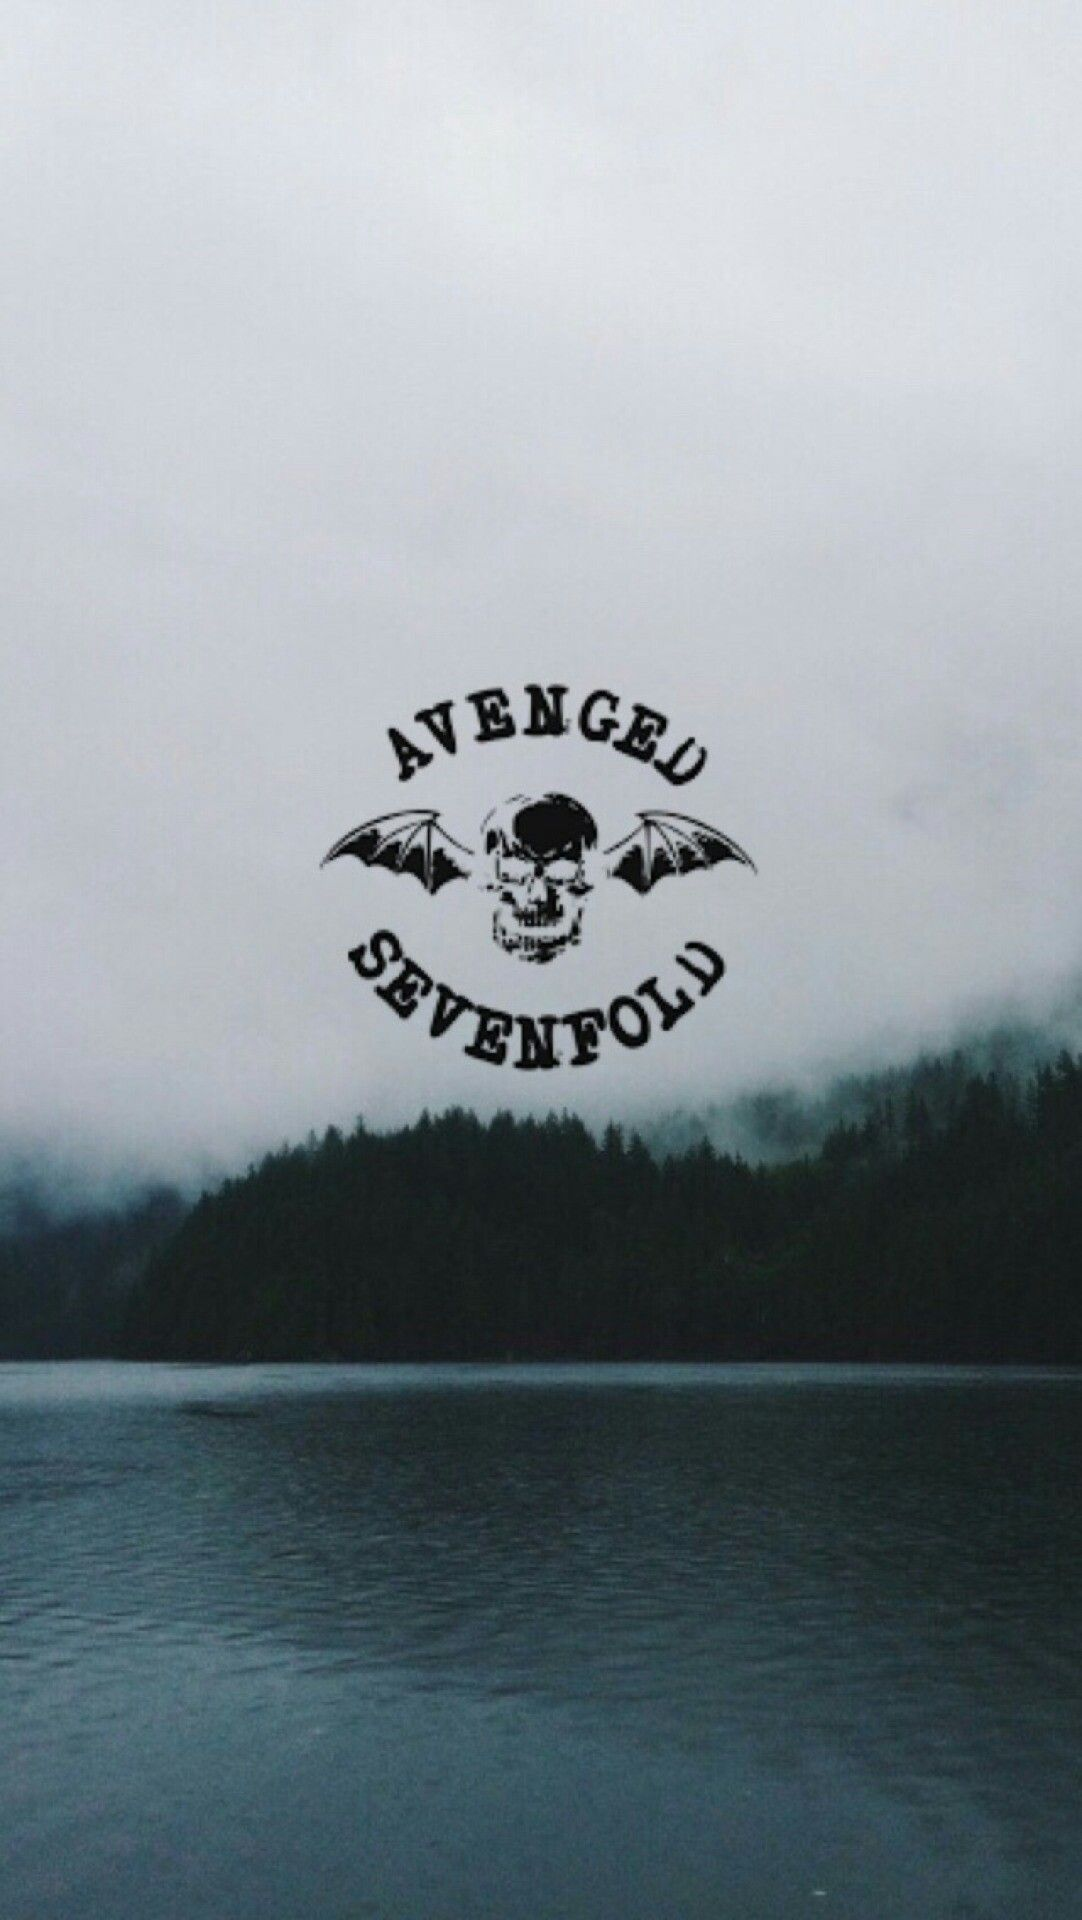 Pin by Creepers Girl on Avenged Sevenfold (A7x) Avenged